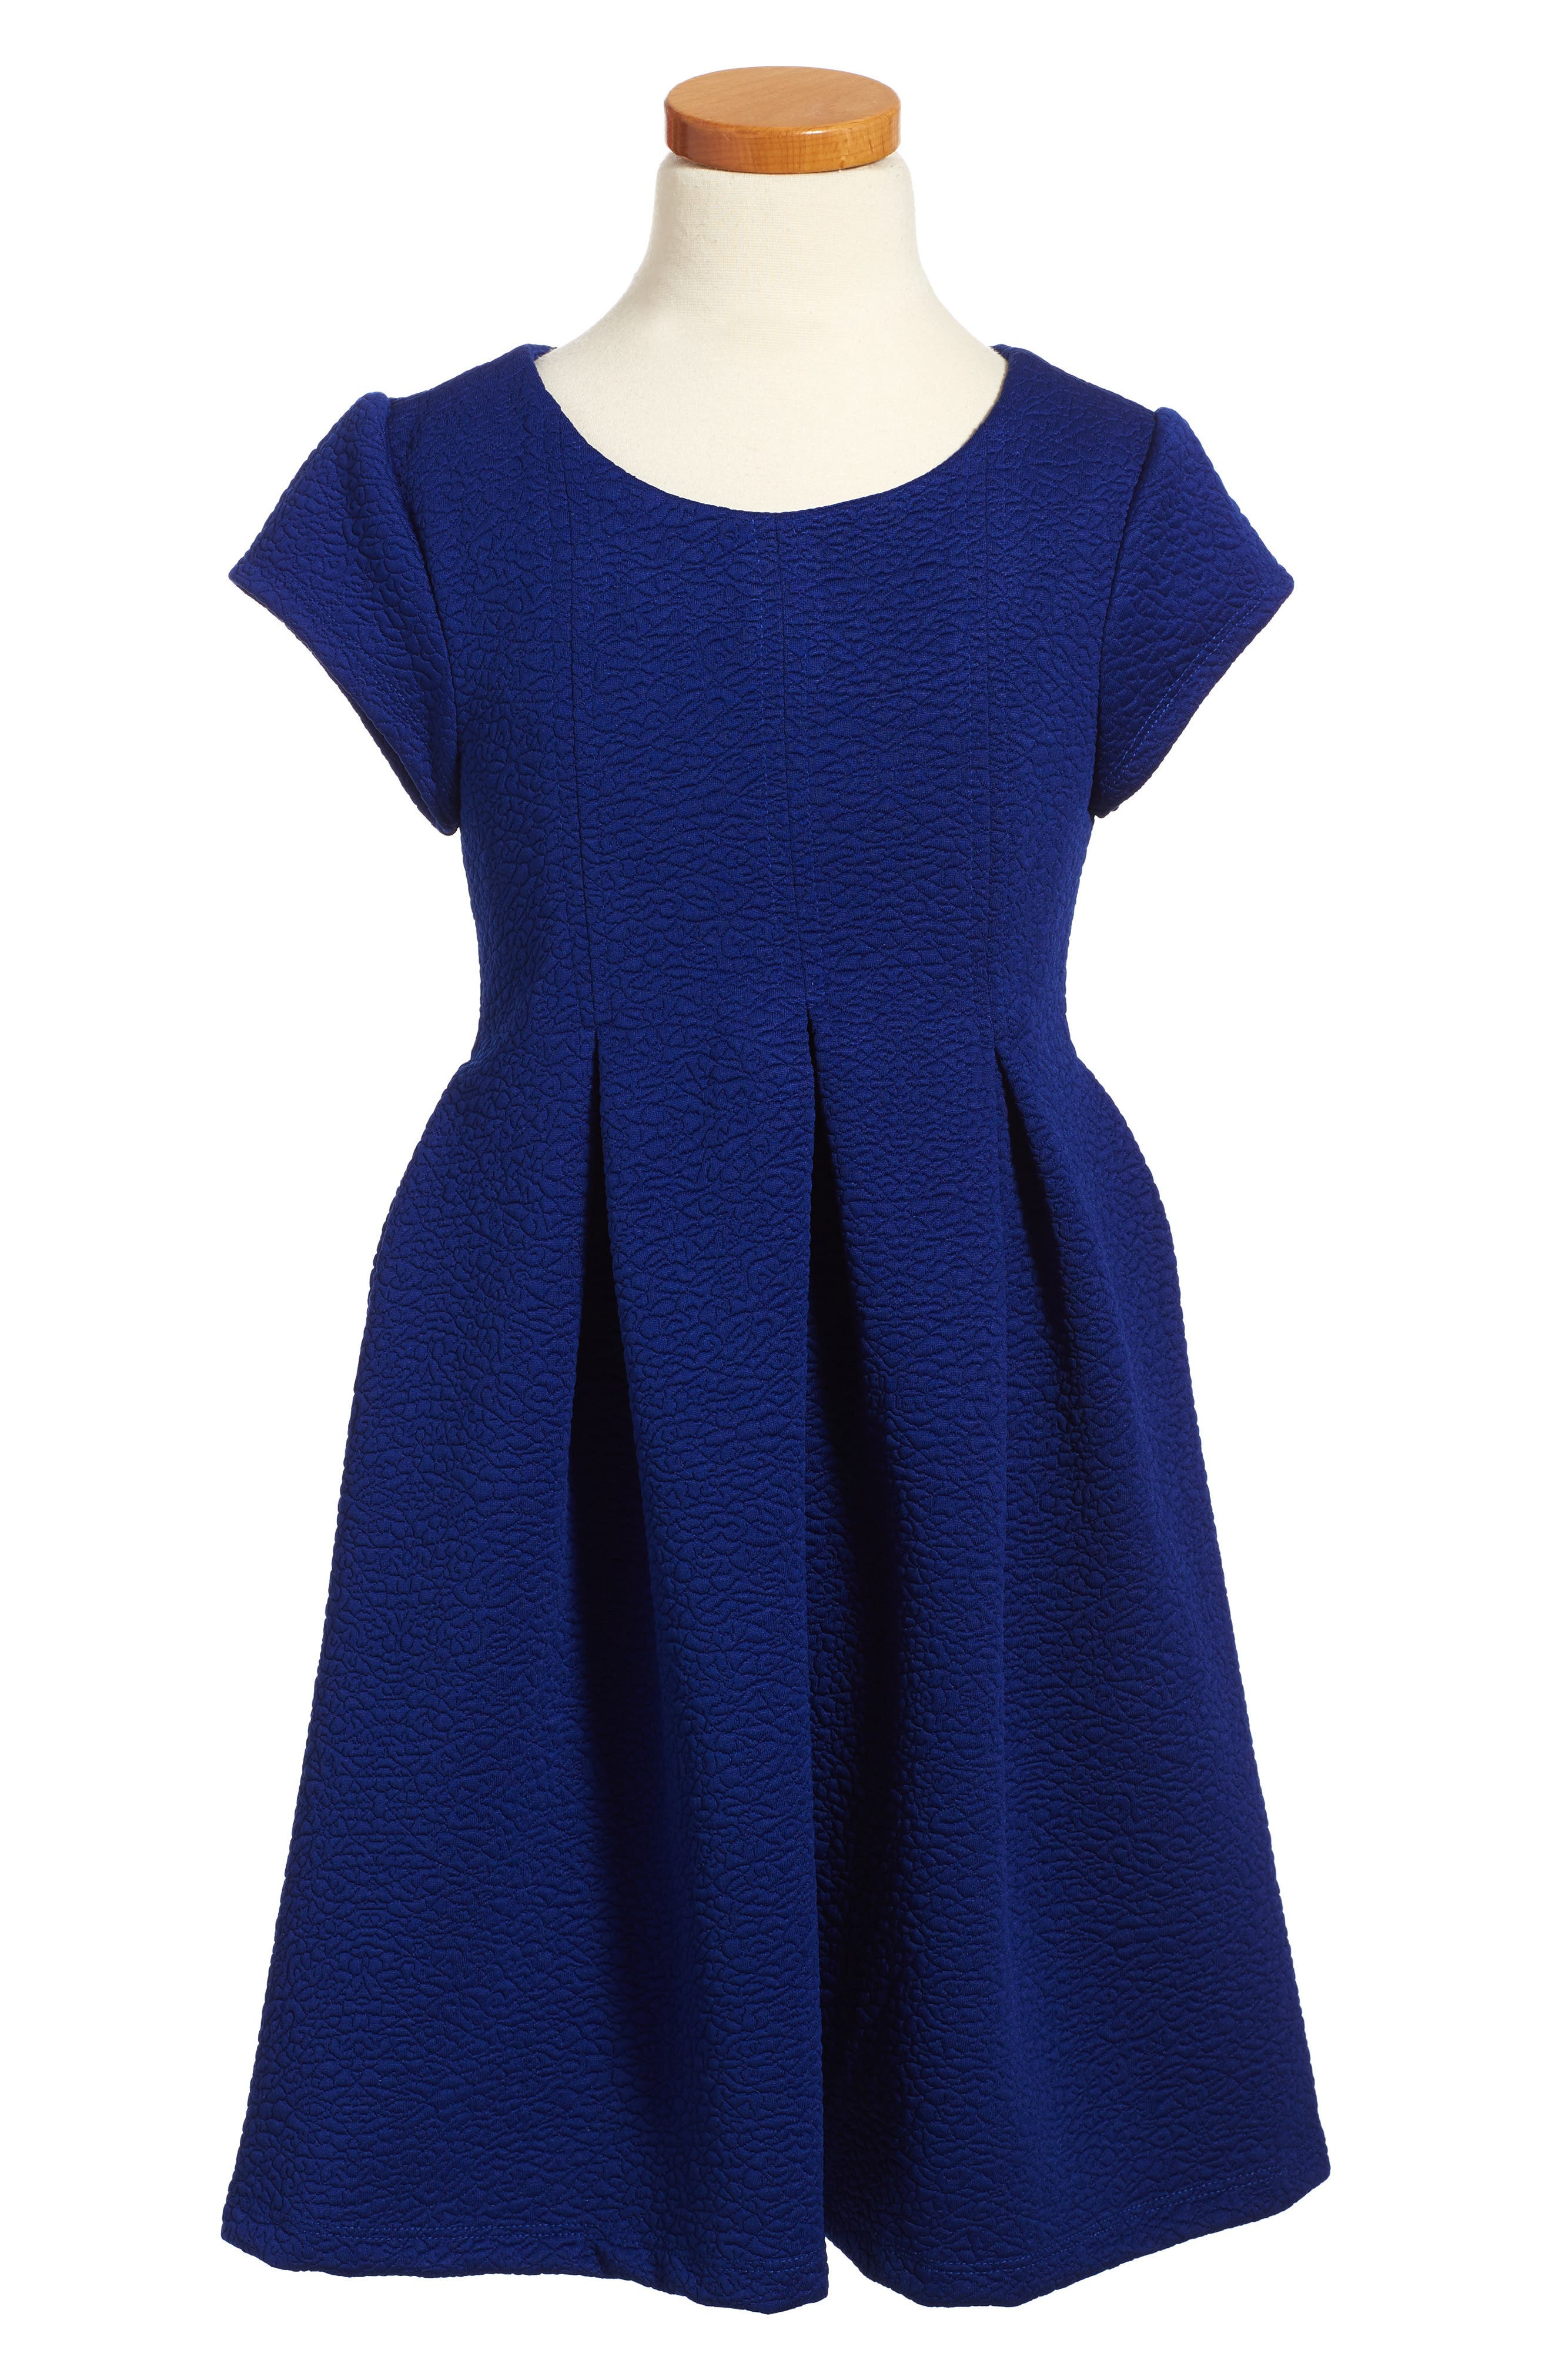 Pleated Knit Dress,                             Main thumbnail 1, color,